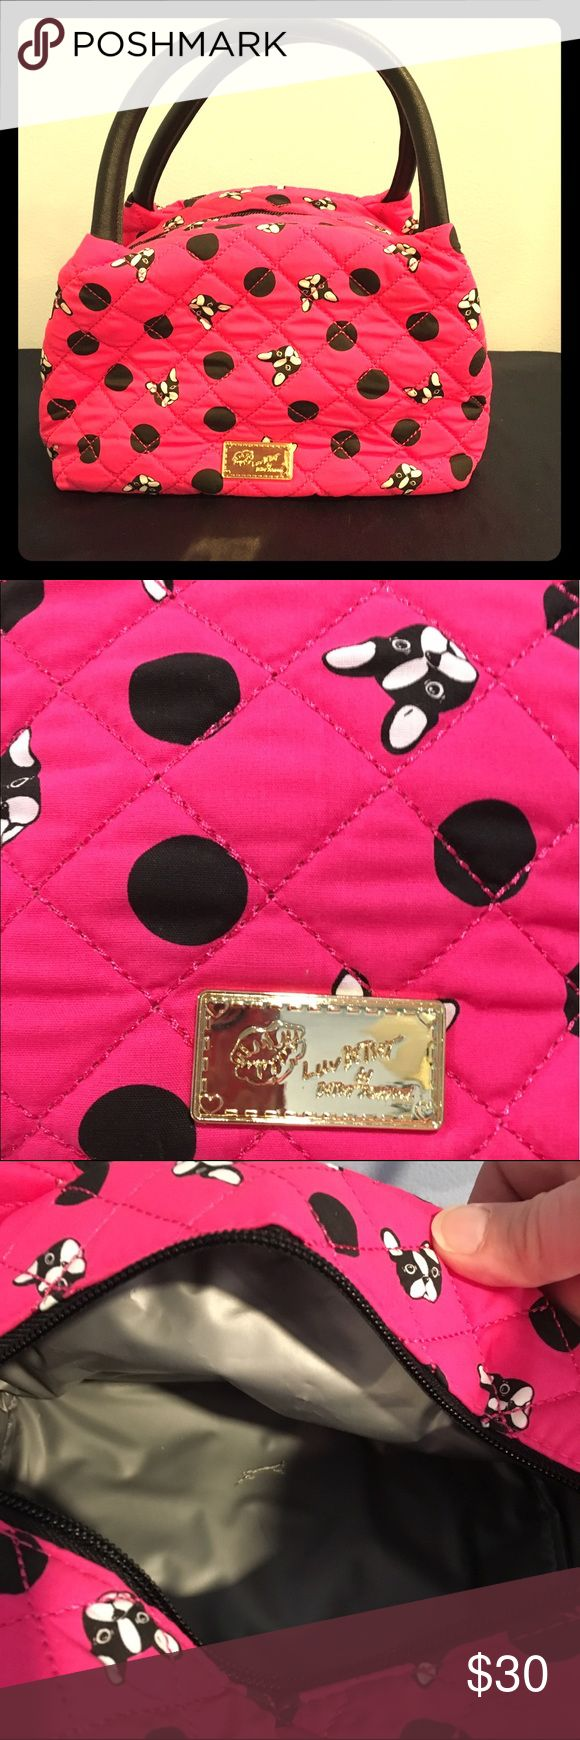 """Luv Betsey Women's or Girls Lunch Cooler/Bag Keep your lunch cool in this stylish quilted cotton with zipper & top carry handles, lunch bag. The exterior has a cute Doggy design.  Flat bottom.  Lined interior.  8 1/2""""D x 6""""H Betsey Johnson Bags Mini Bags"""